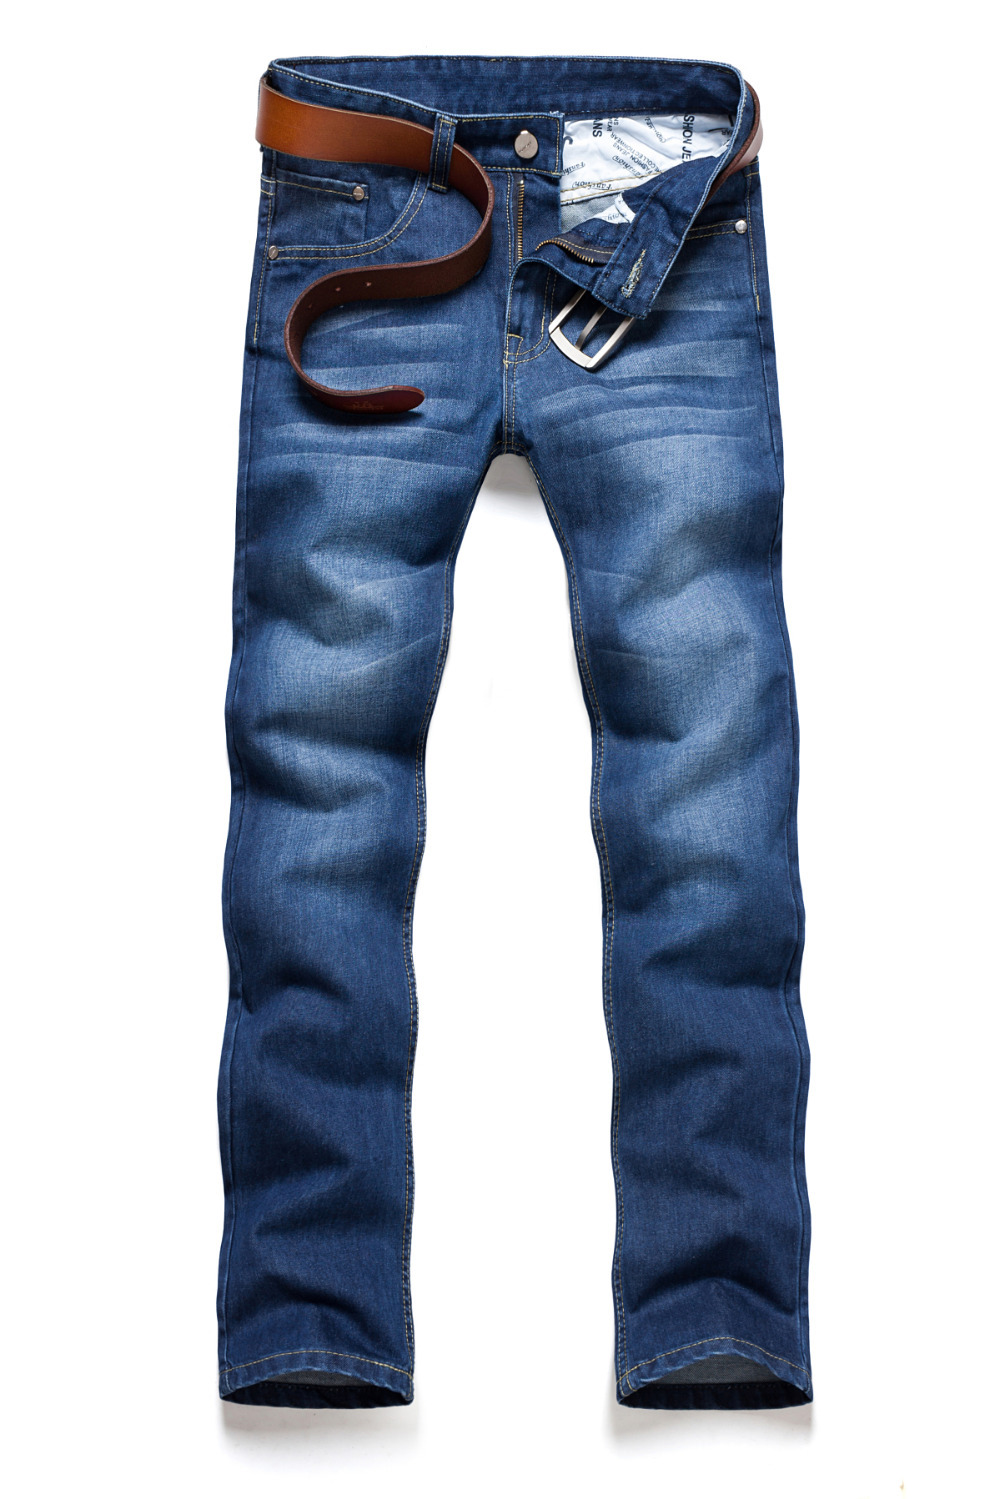 Cheap mens fashion clothing